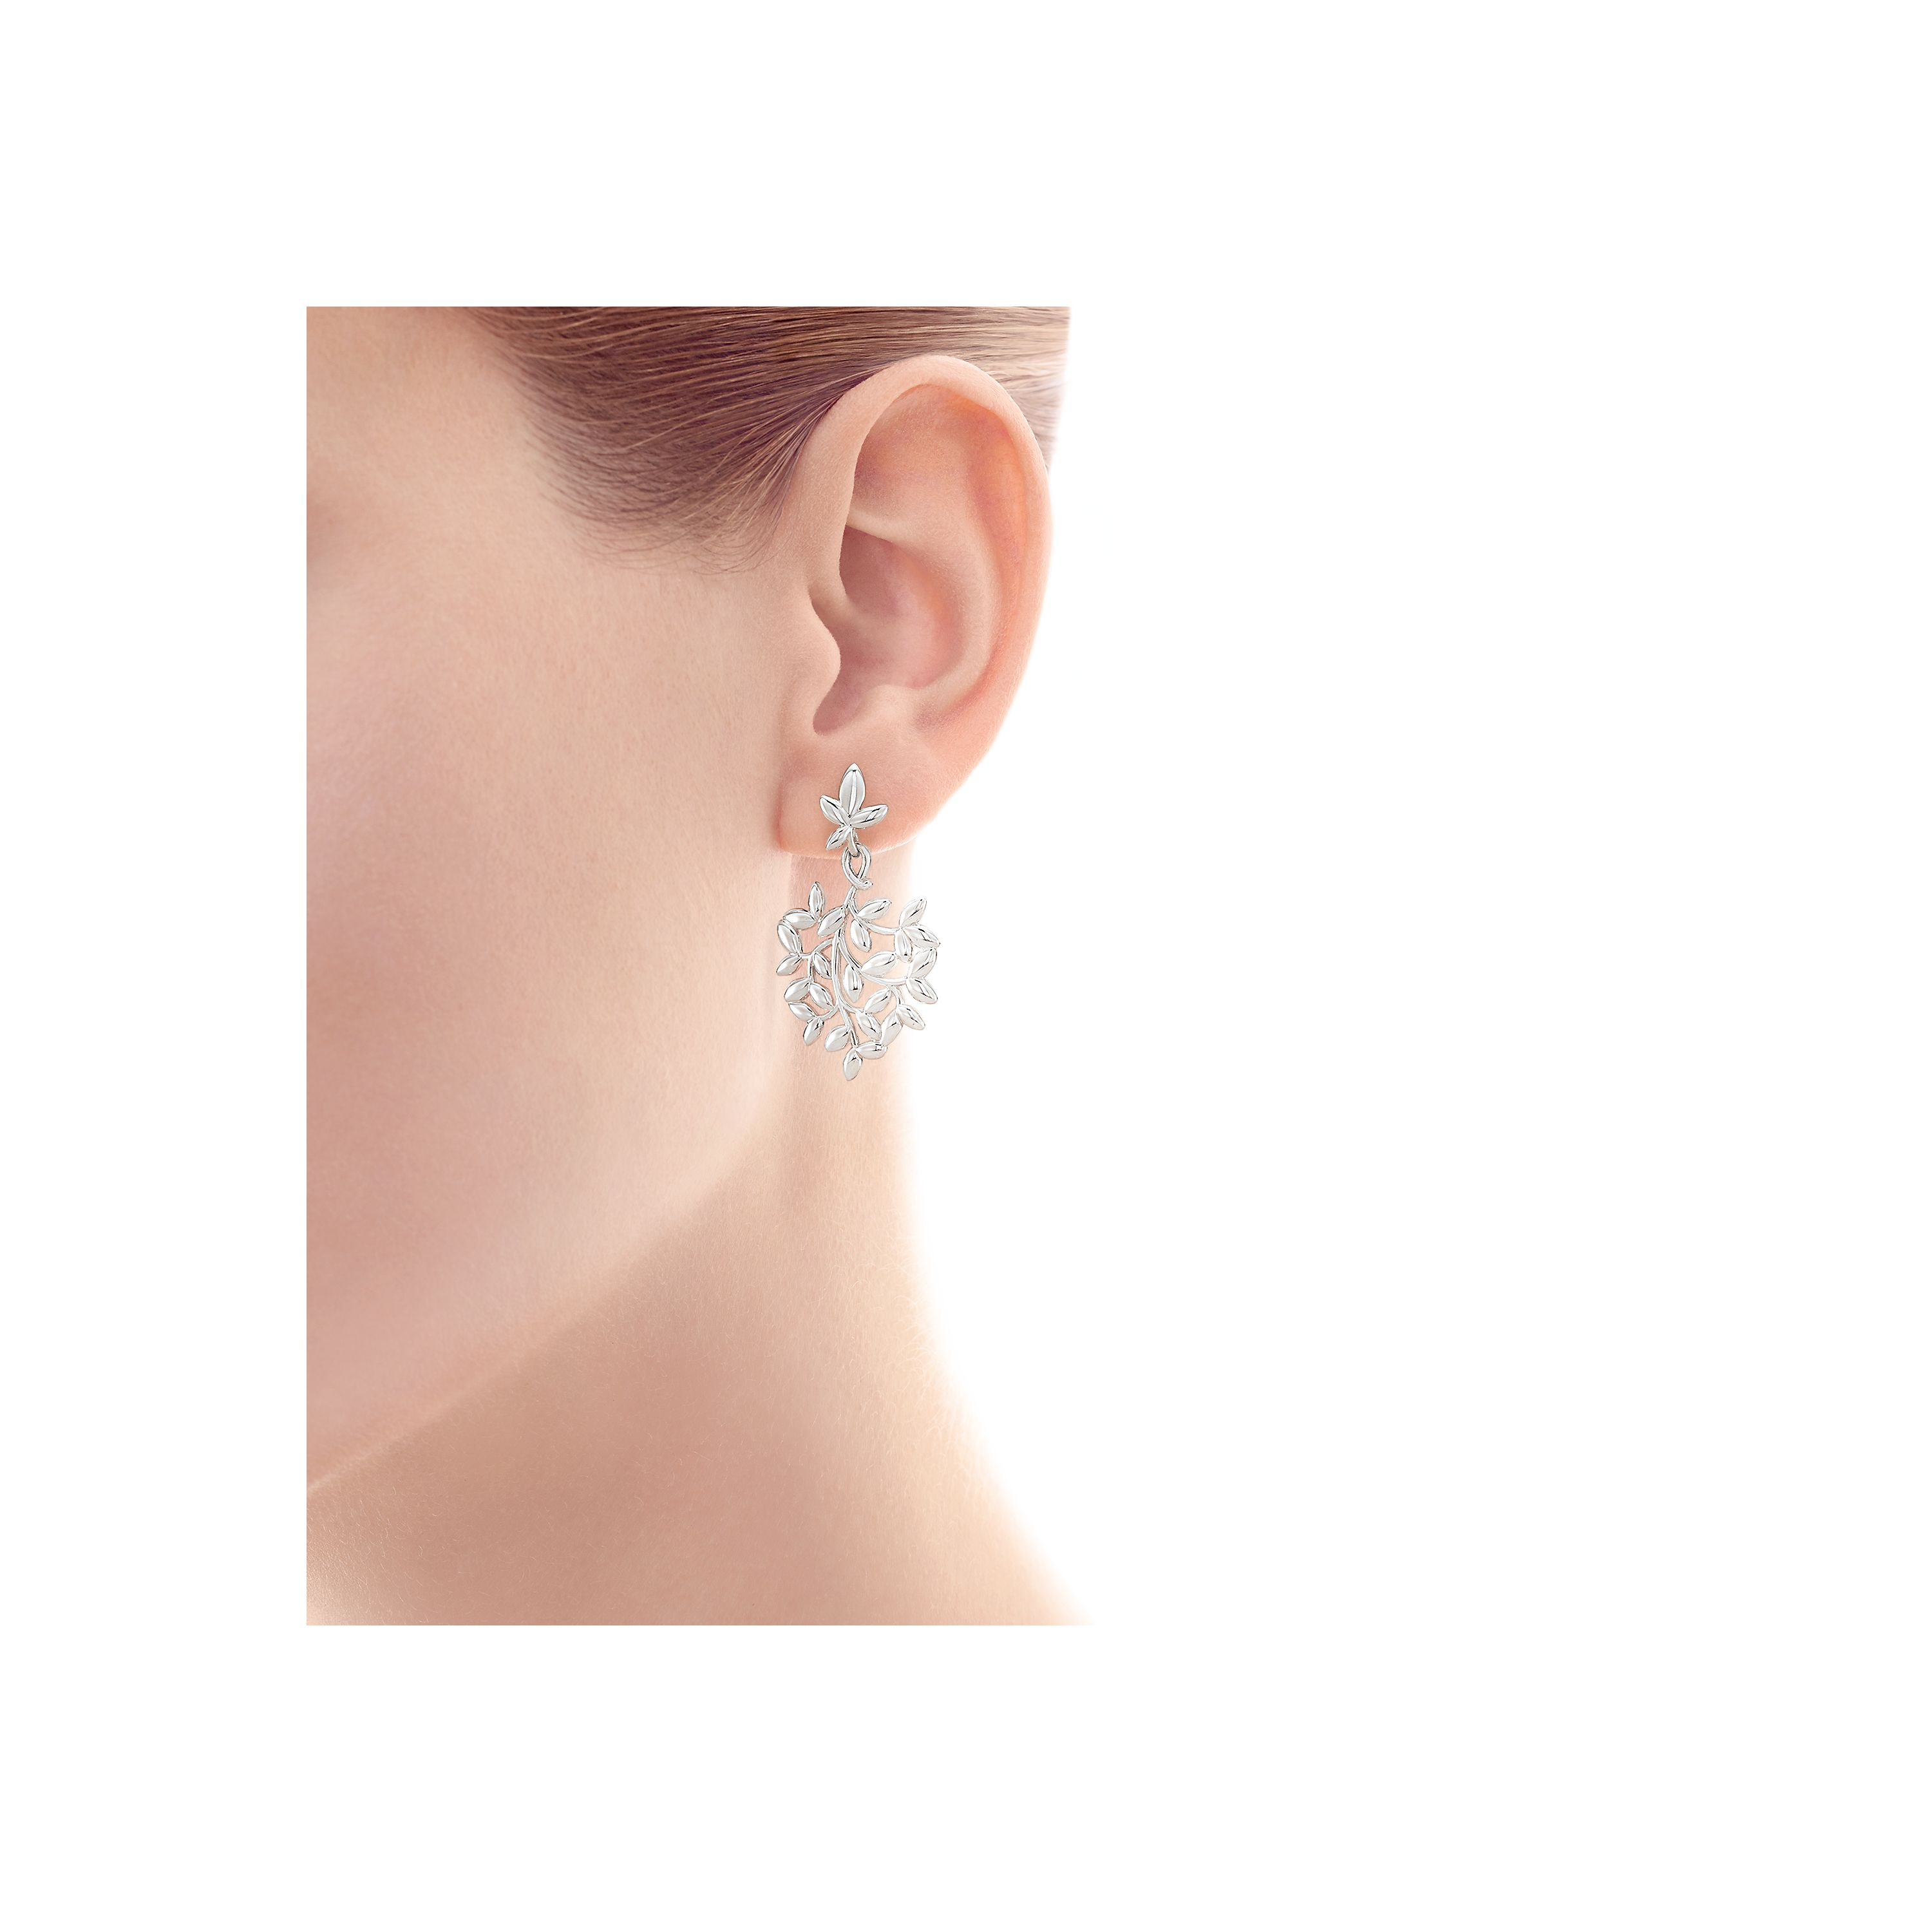 Paloma Picasso Olive Leaf drop earrings in sterling silver with pearls Tiffany & Co. DBlfleeKVW